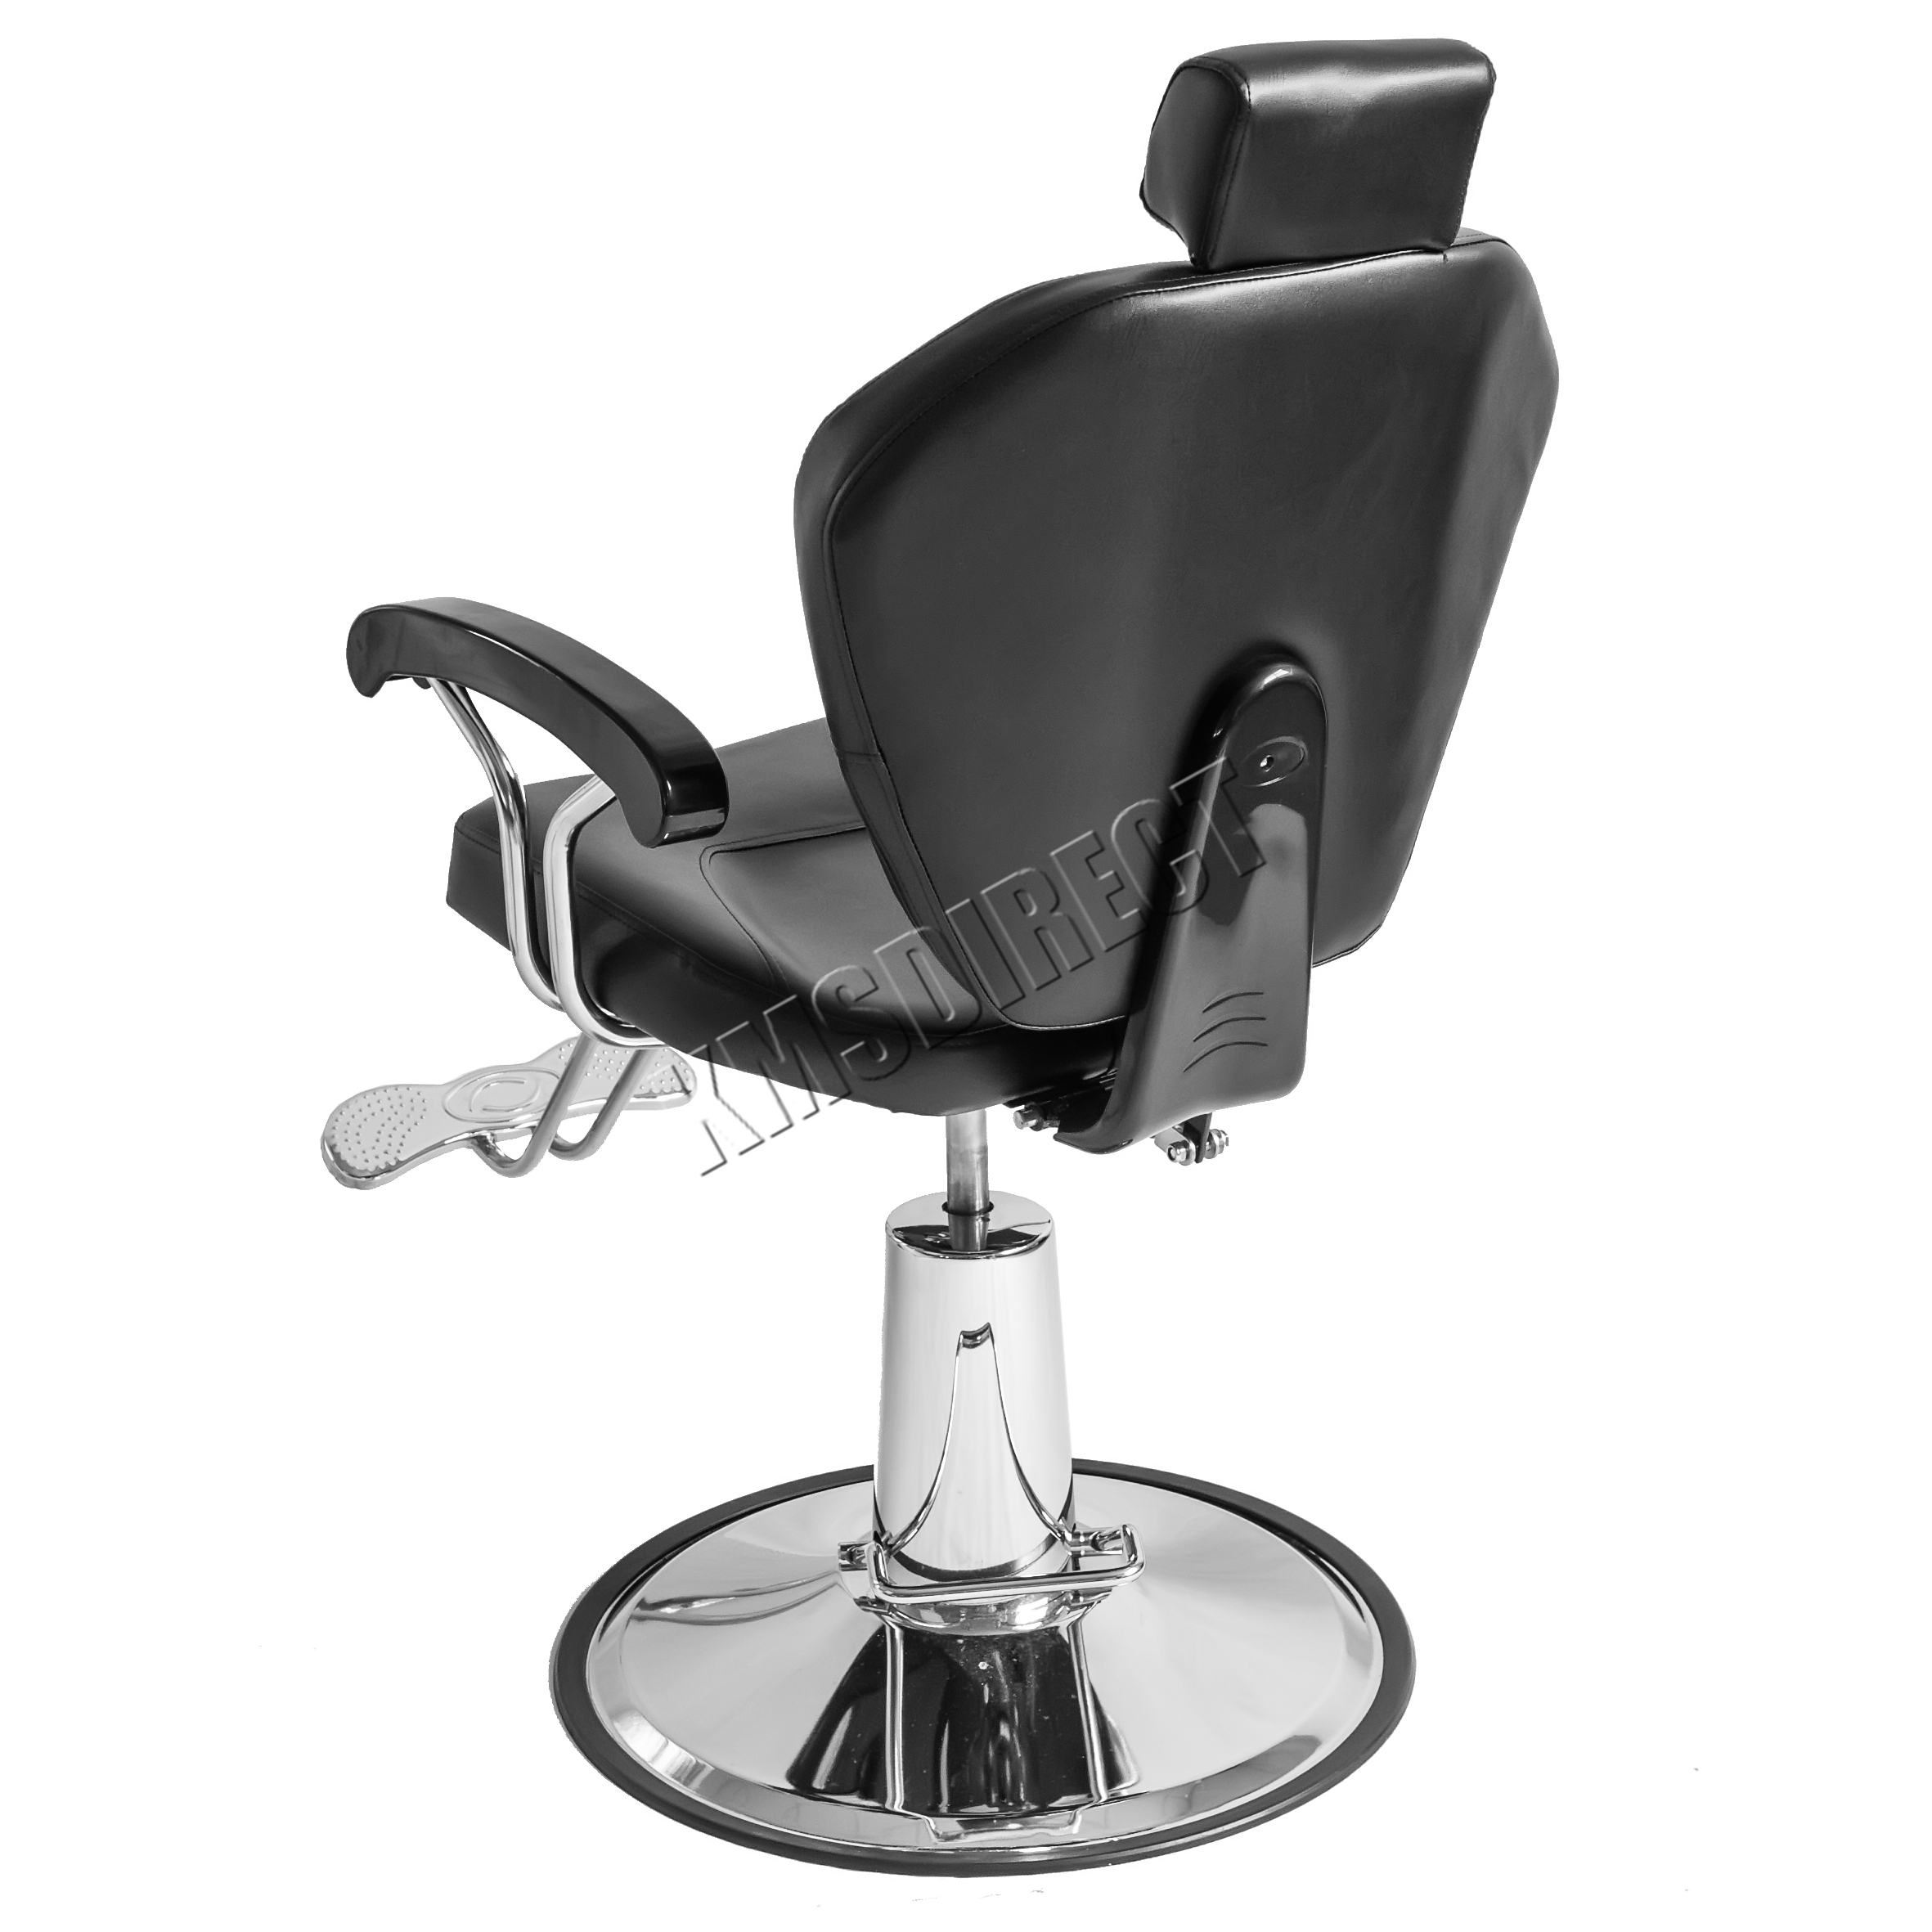 SENTINELLE FoxHunter Salon Coiffure Hydraulique Inclinable Chaise Beaut Tatouage SC01